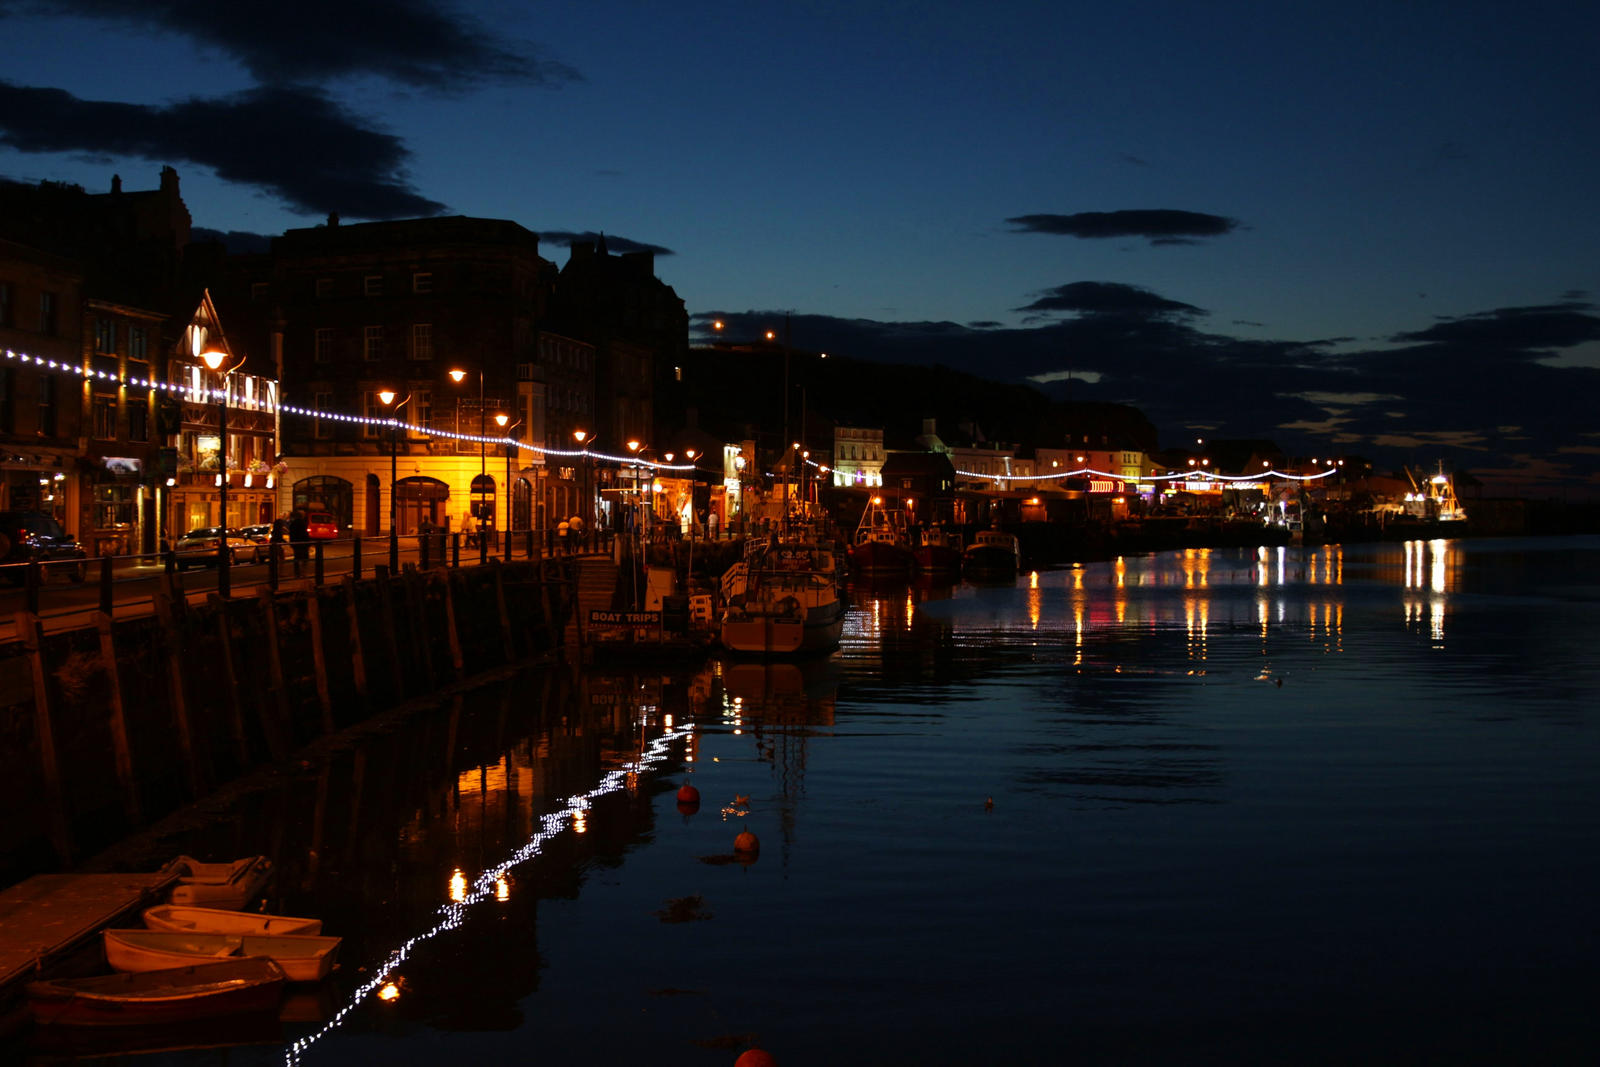 Whitby in the evining by LoveForDetails